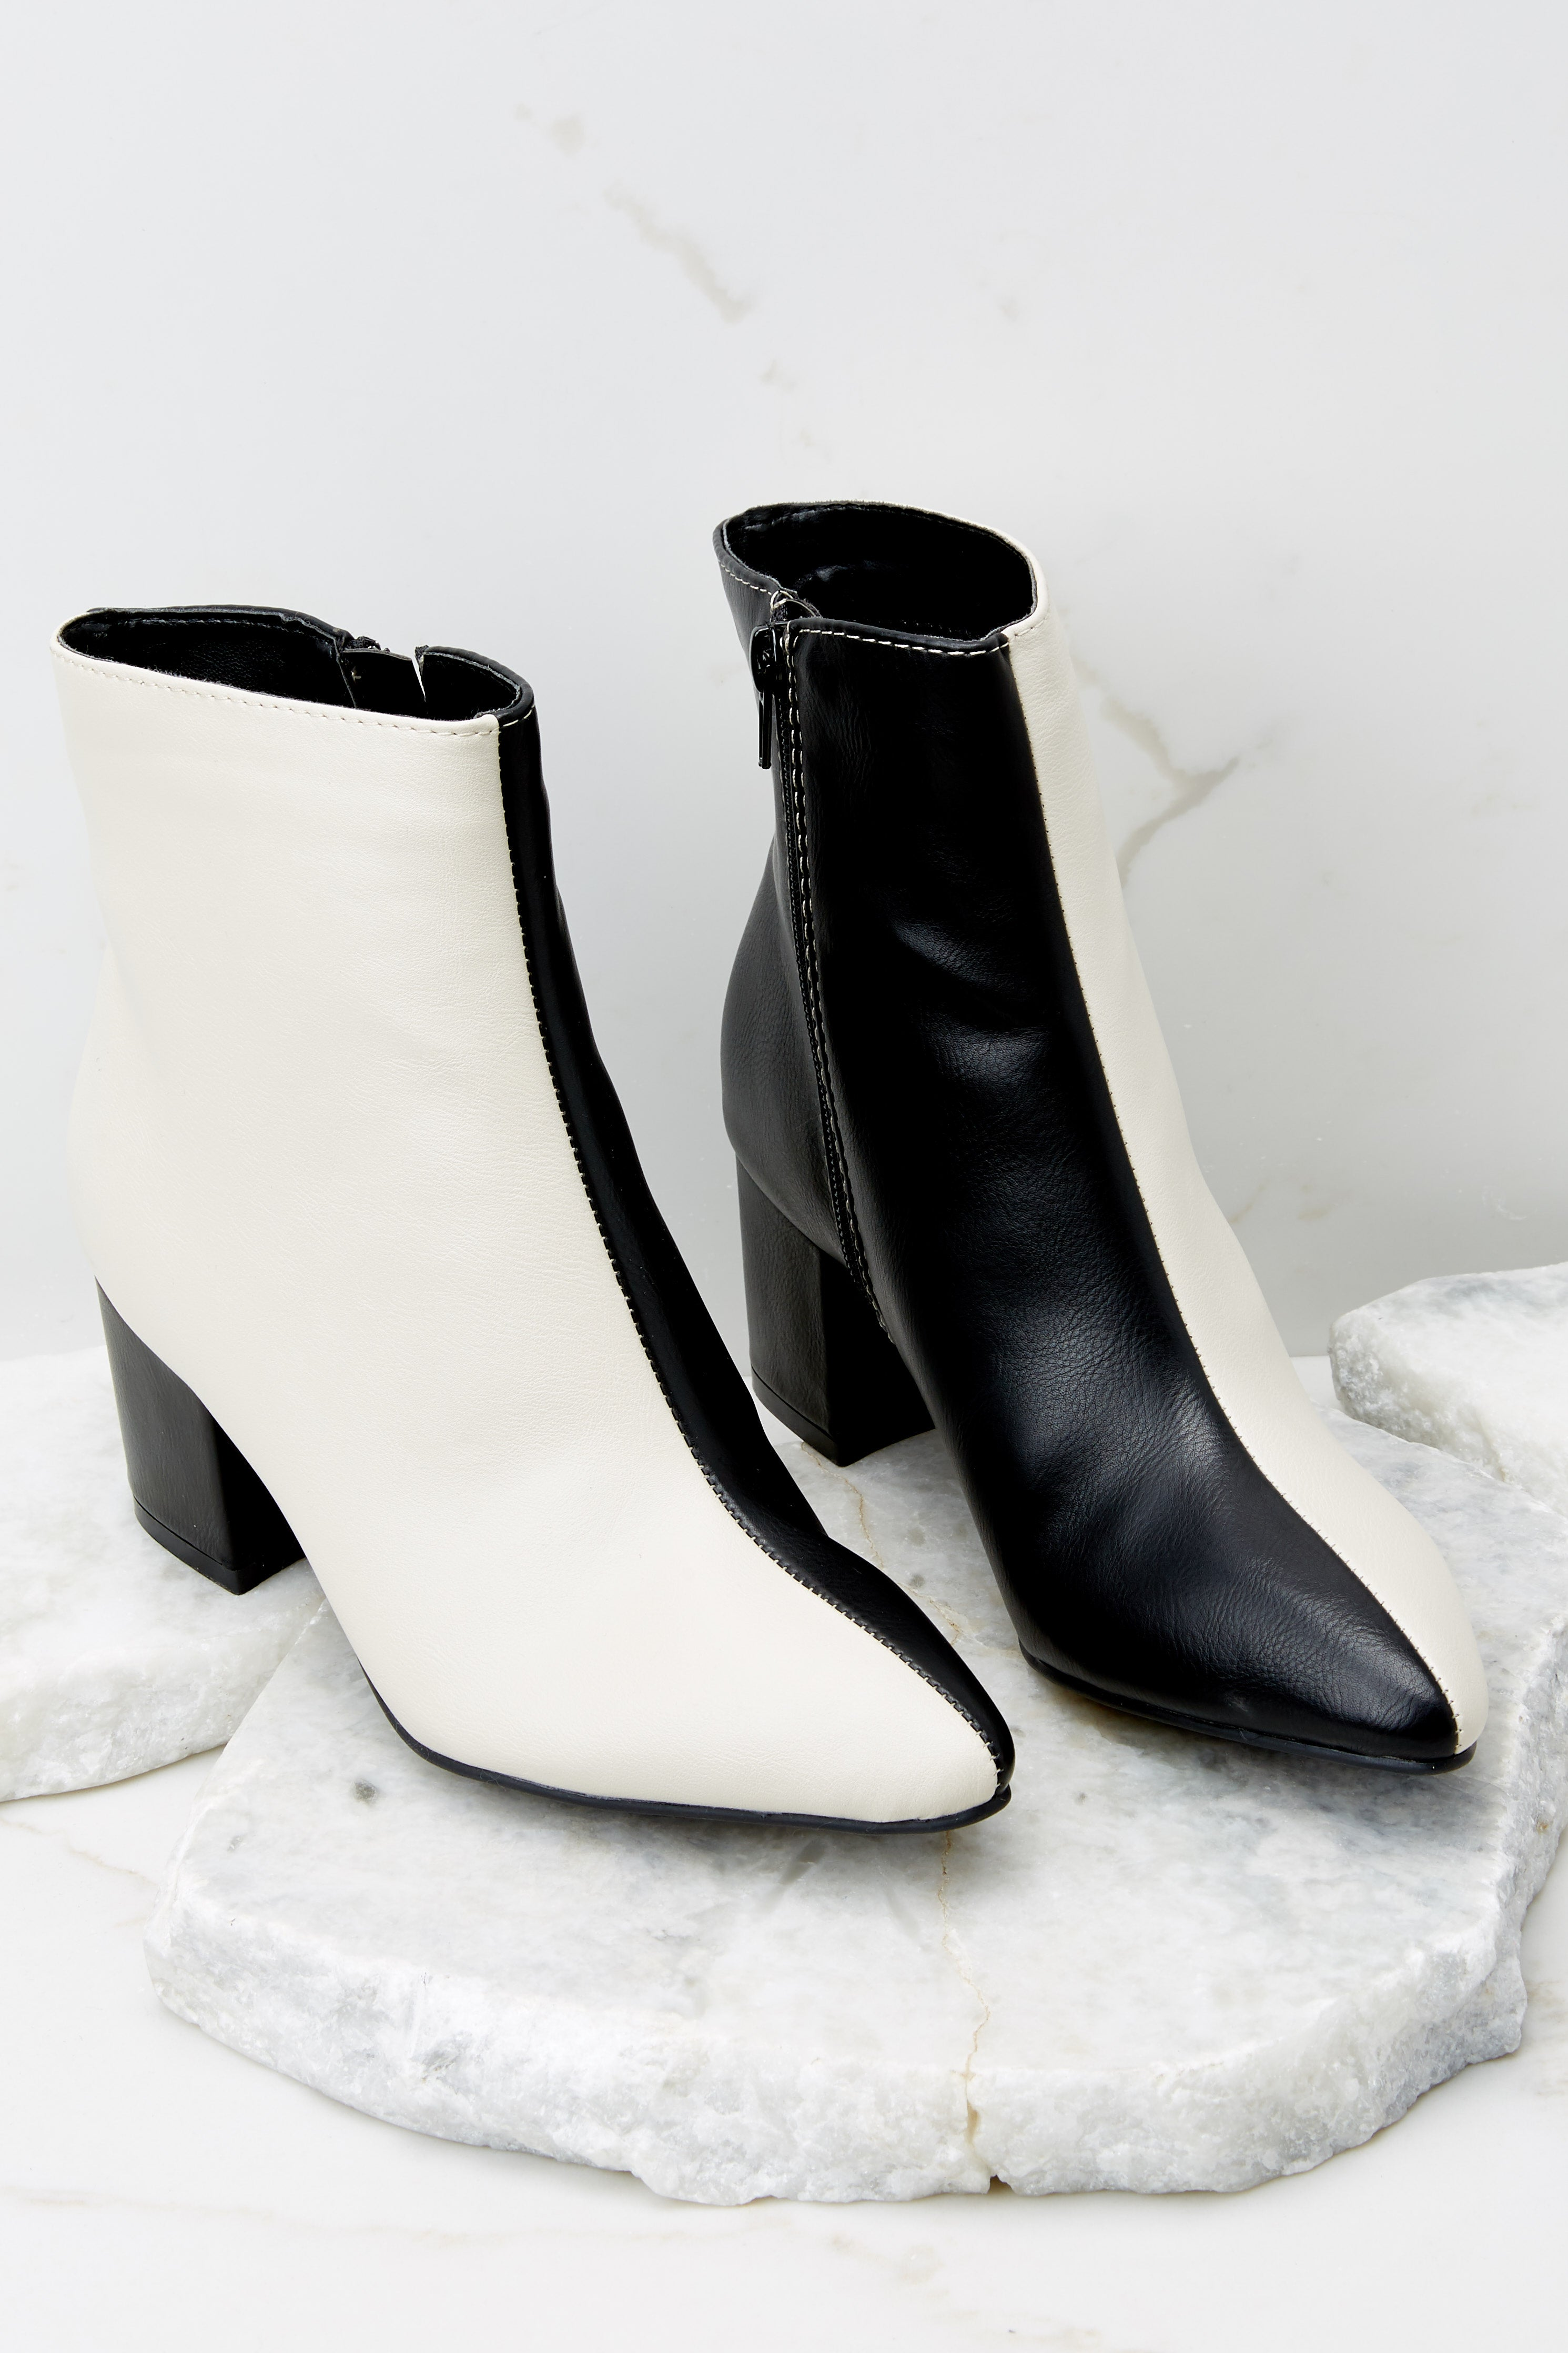 2 Split Decision Ivory And Black Ankle Booties at reddress.com